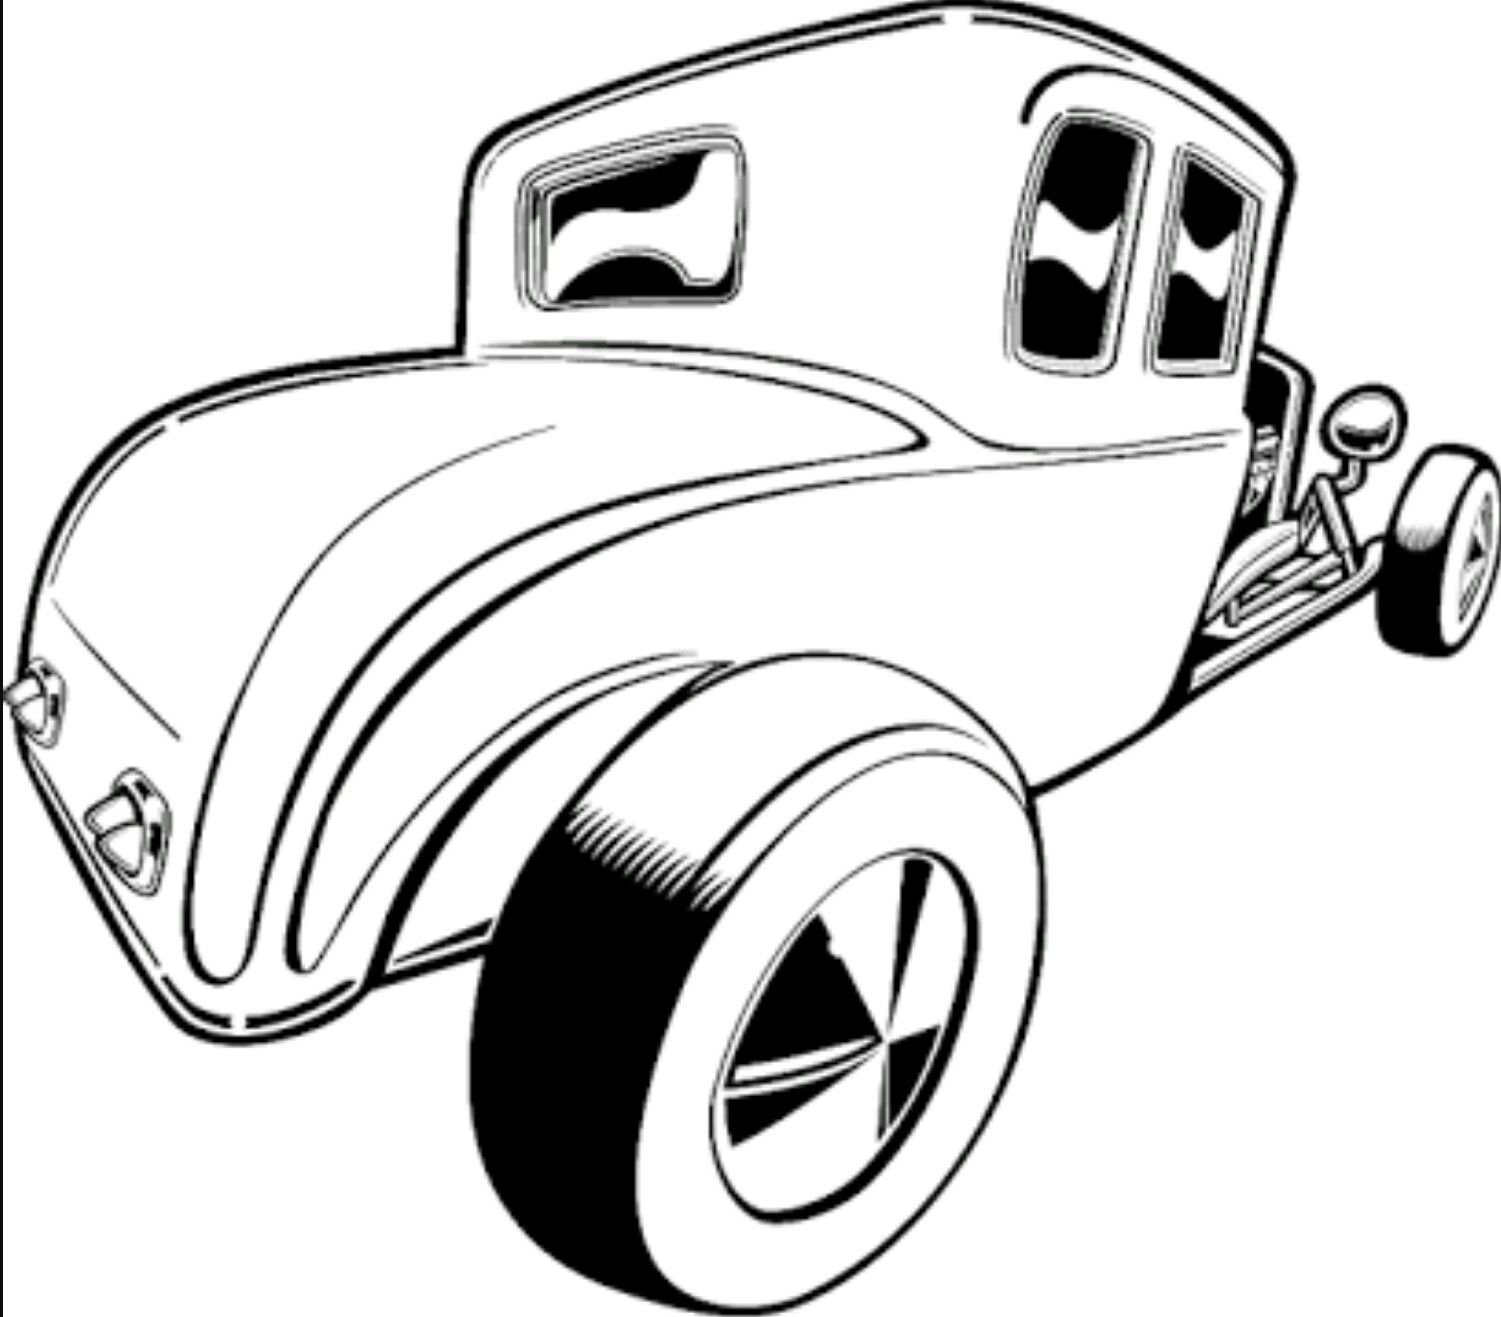 pin by guy crennan on cars pinterest car drawings cars toons rh pinterest com hot rod clipart designs for vinyl cutting hot rod clipart vector free